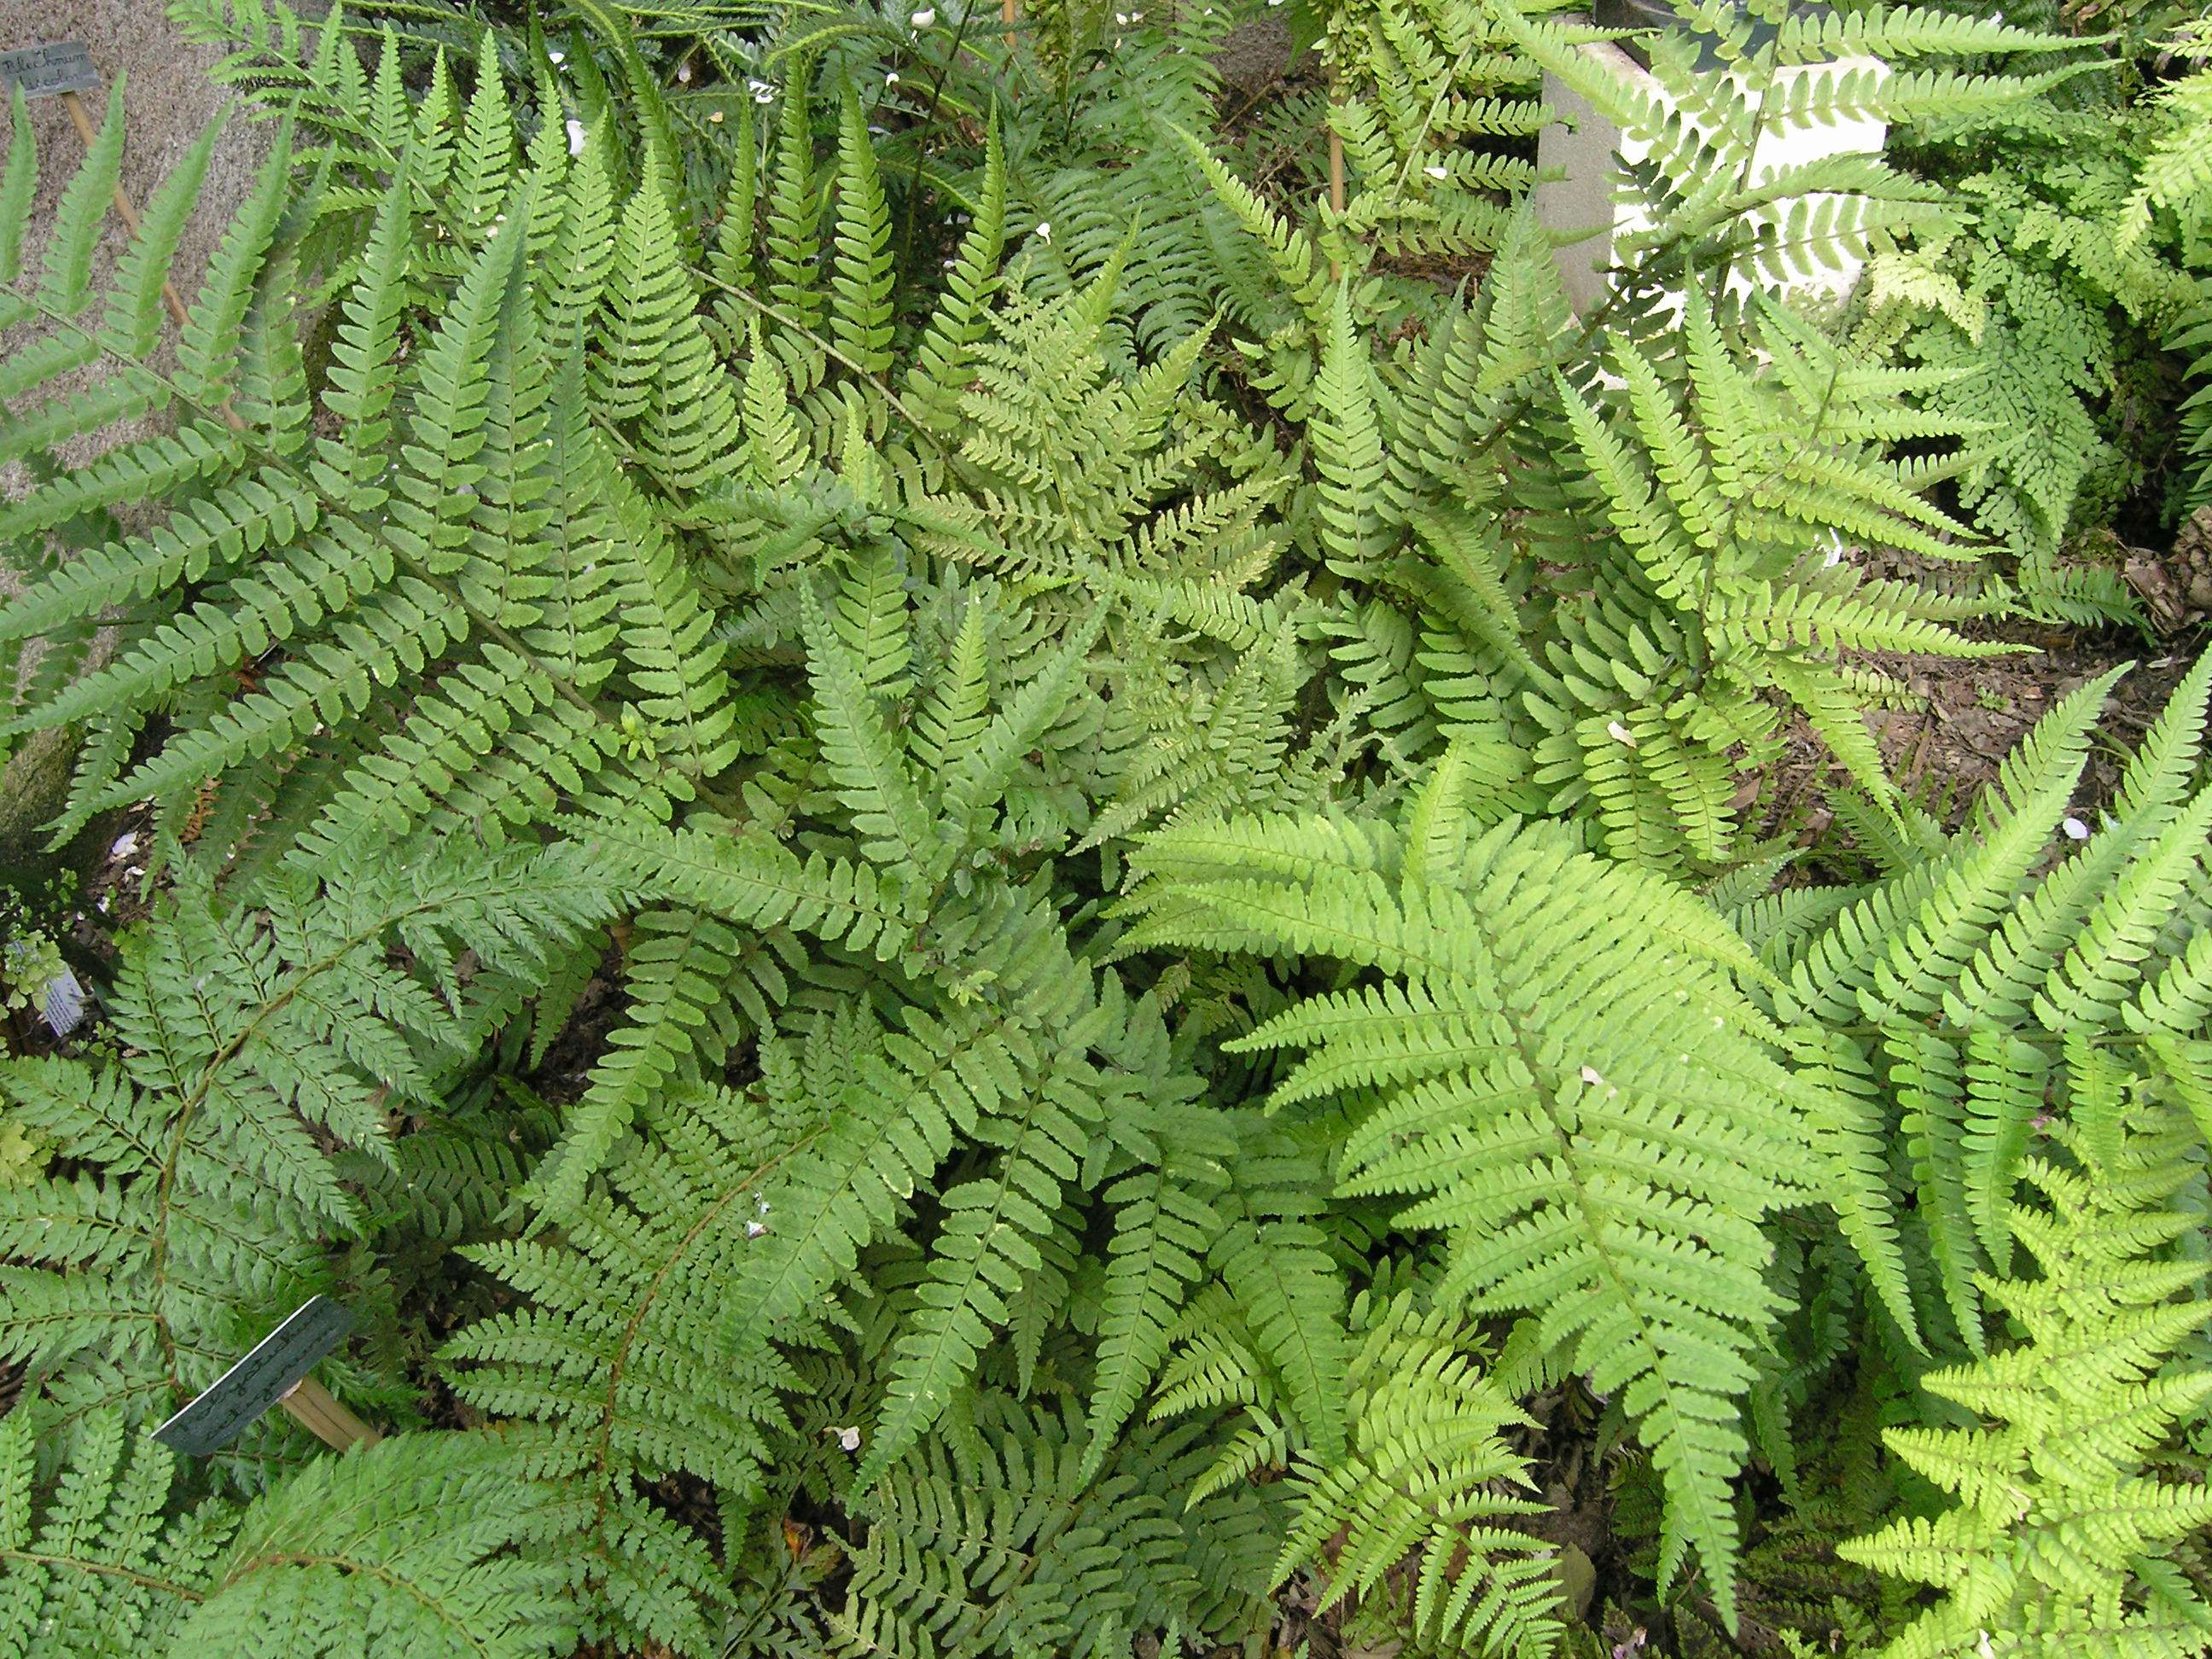 Dryopteris uniformis